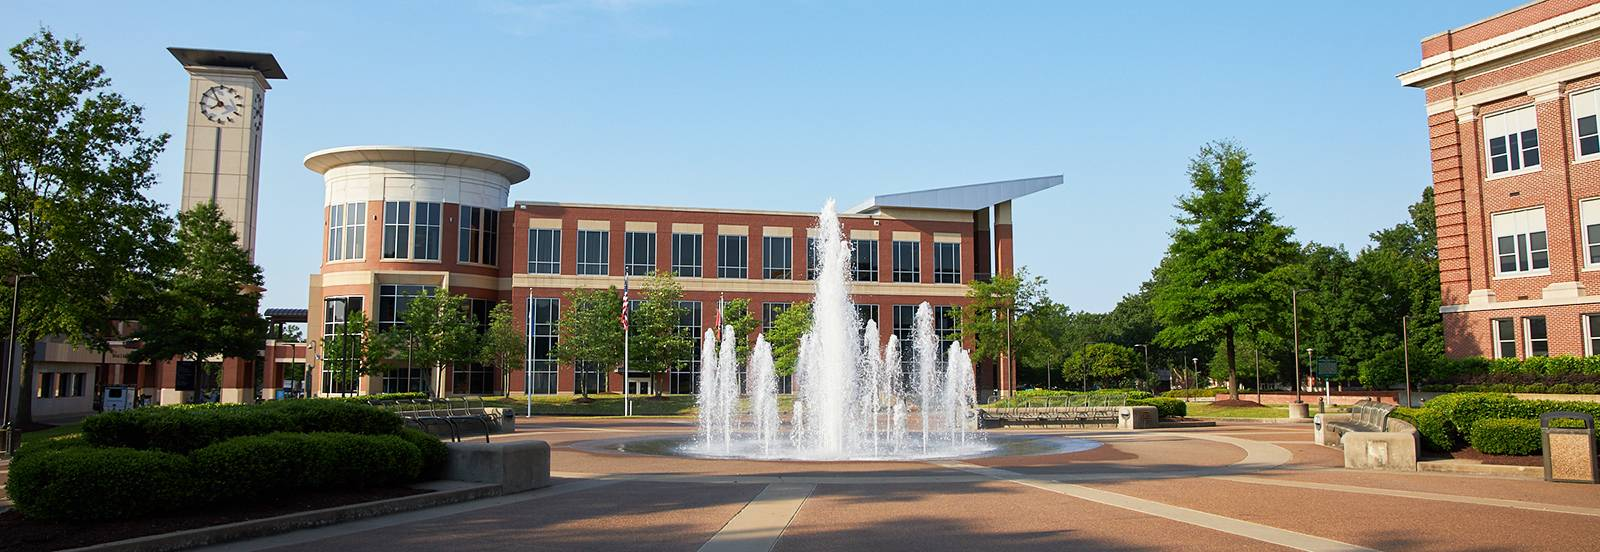 Campus fountain plaza with University Center in background